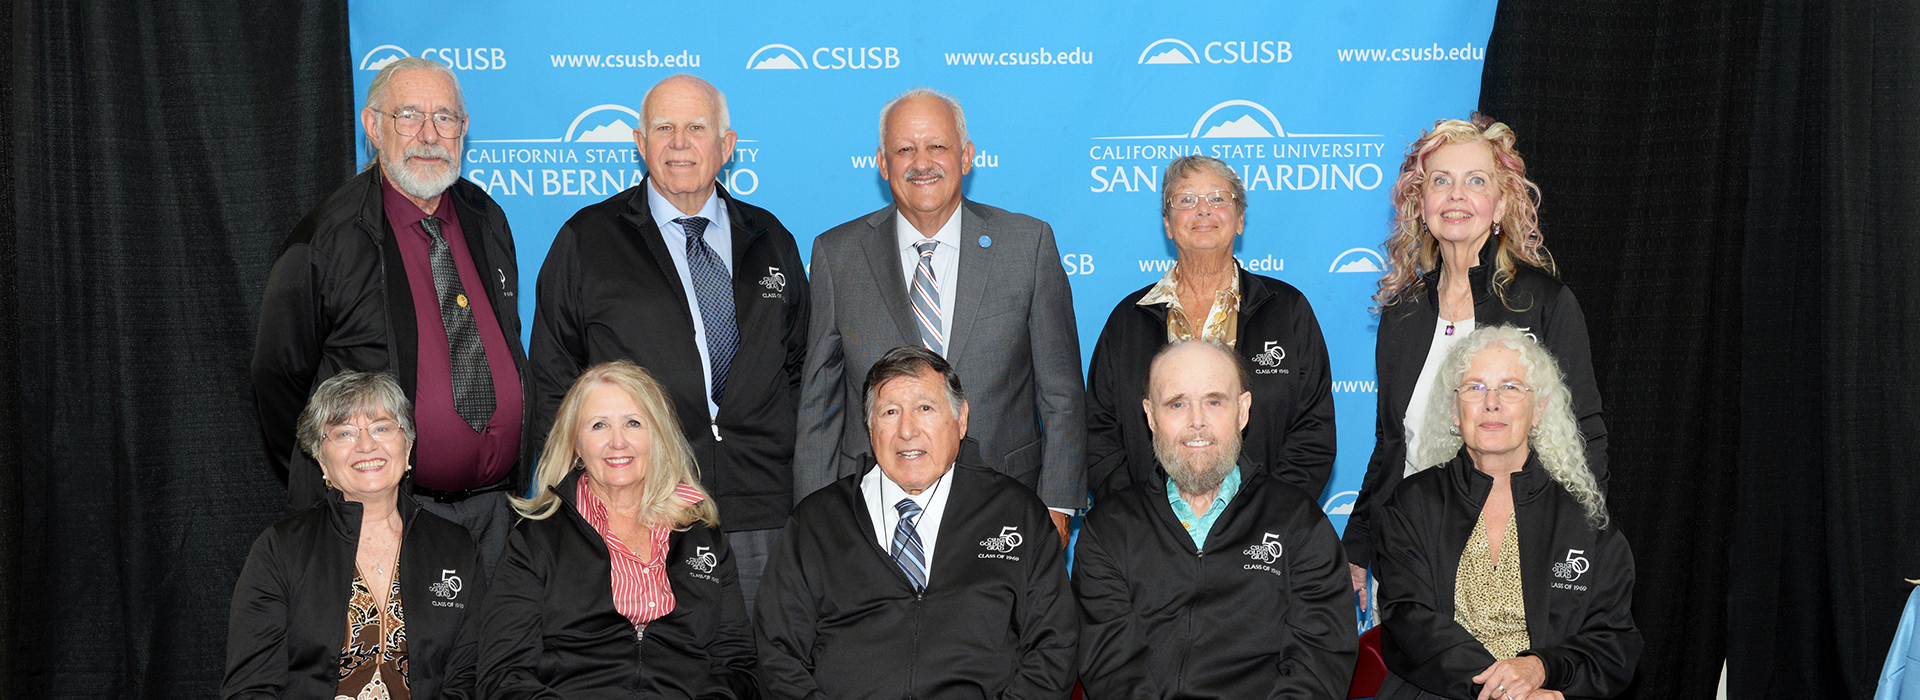 The 1969 Golden Grads celebrate 50 years at Cal State San Bernardino